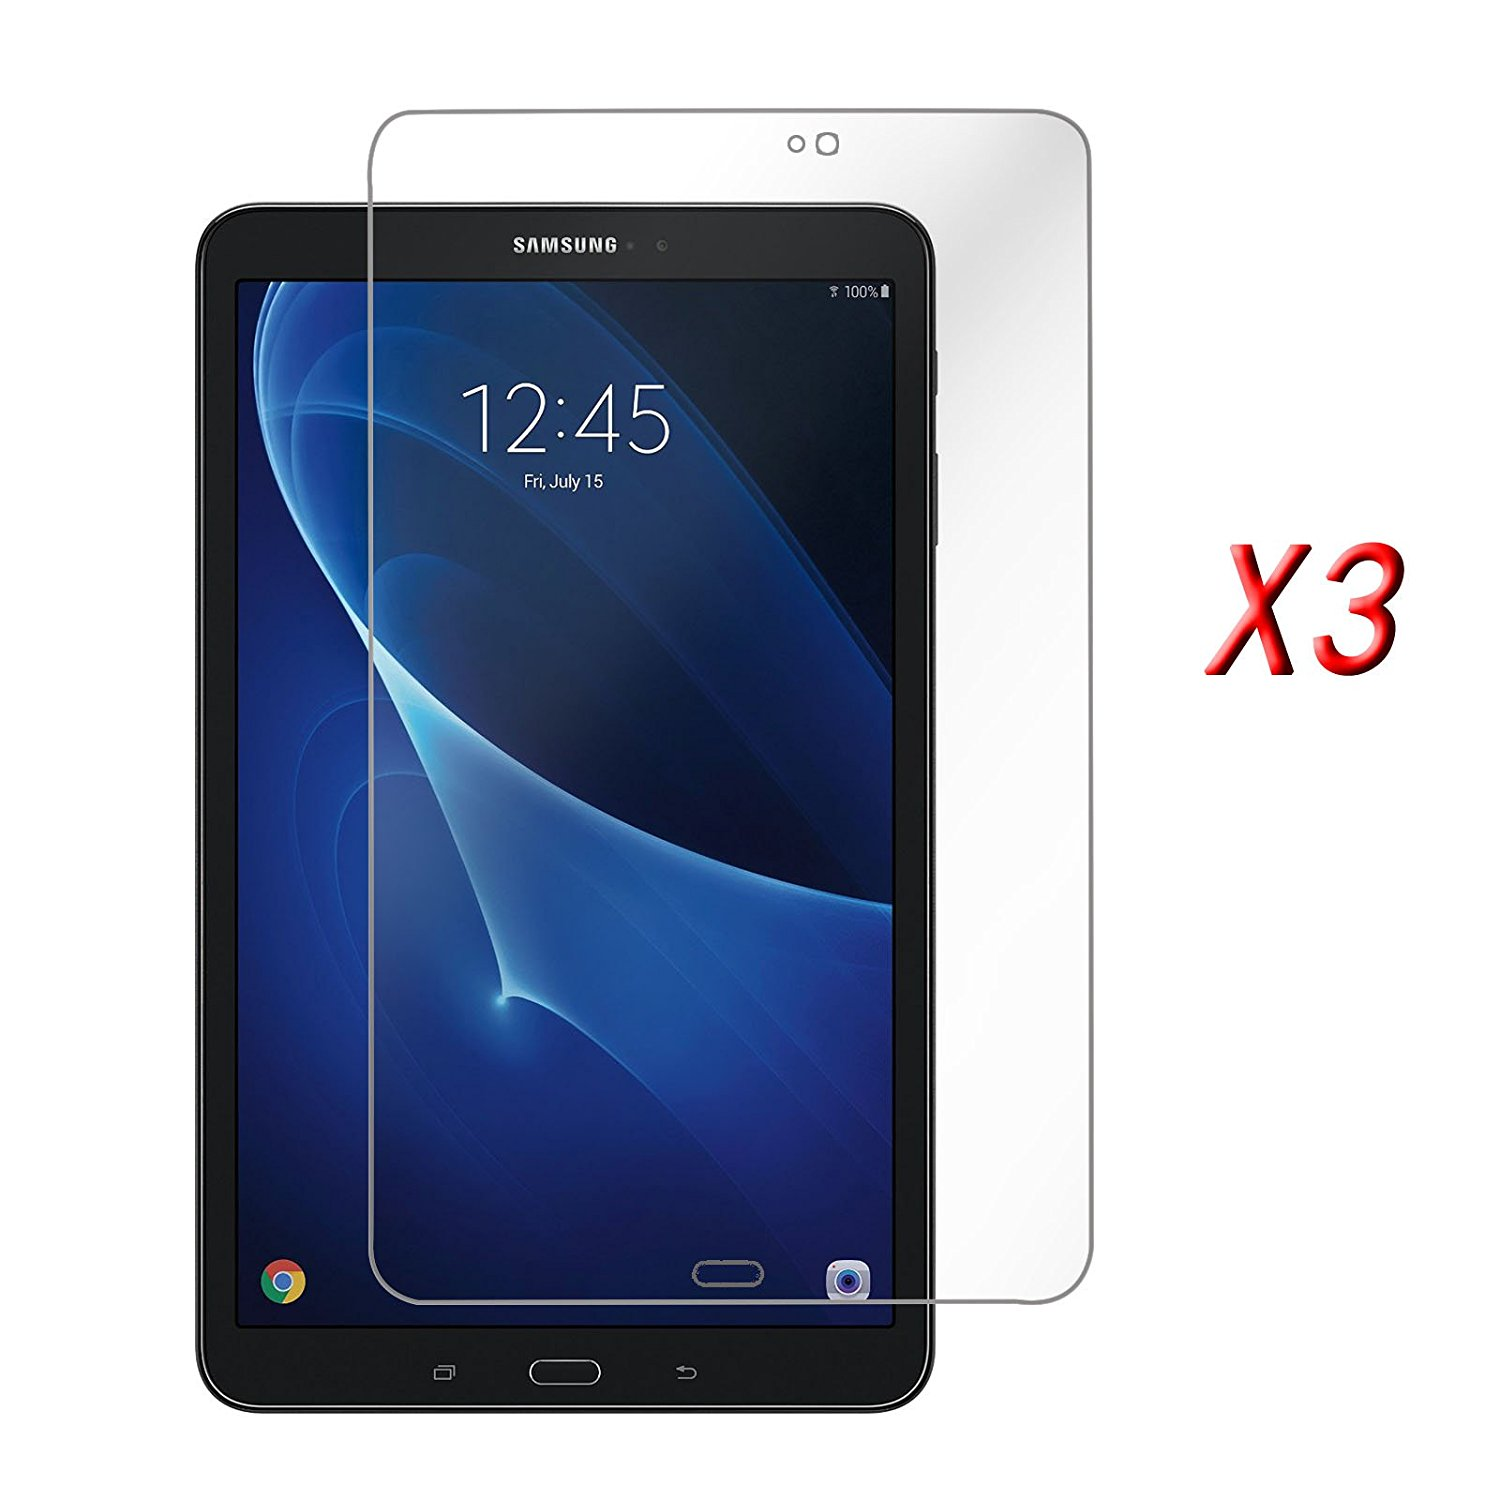 Infiland Galaxy Tab A 7.0 Screen Protector, 3-PACK Cystal Clear Screen Protector Film Guard For Samsung Galaxy Tab A 7.0 2016 Release 7-Inch Tablet(SM-T280 / SM-T285)(HD Clear)